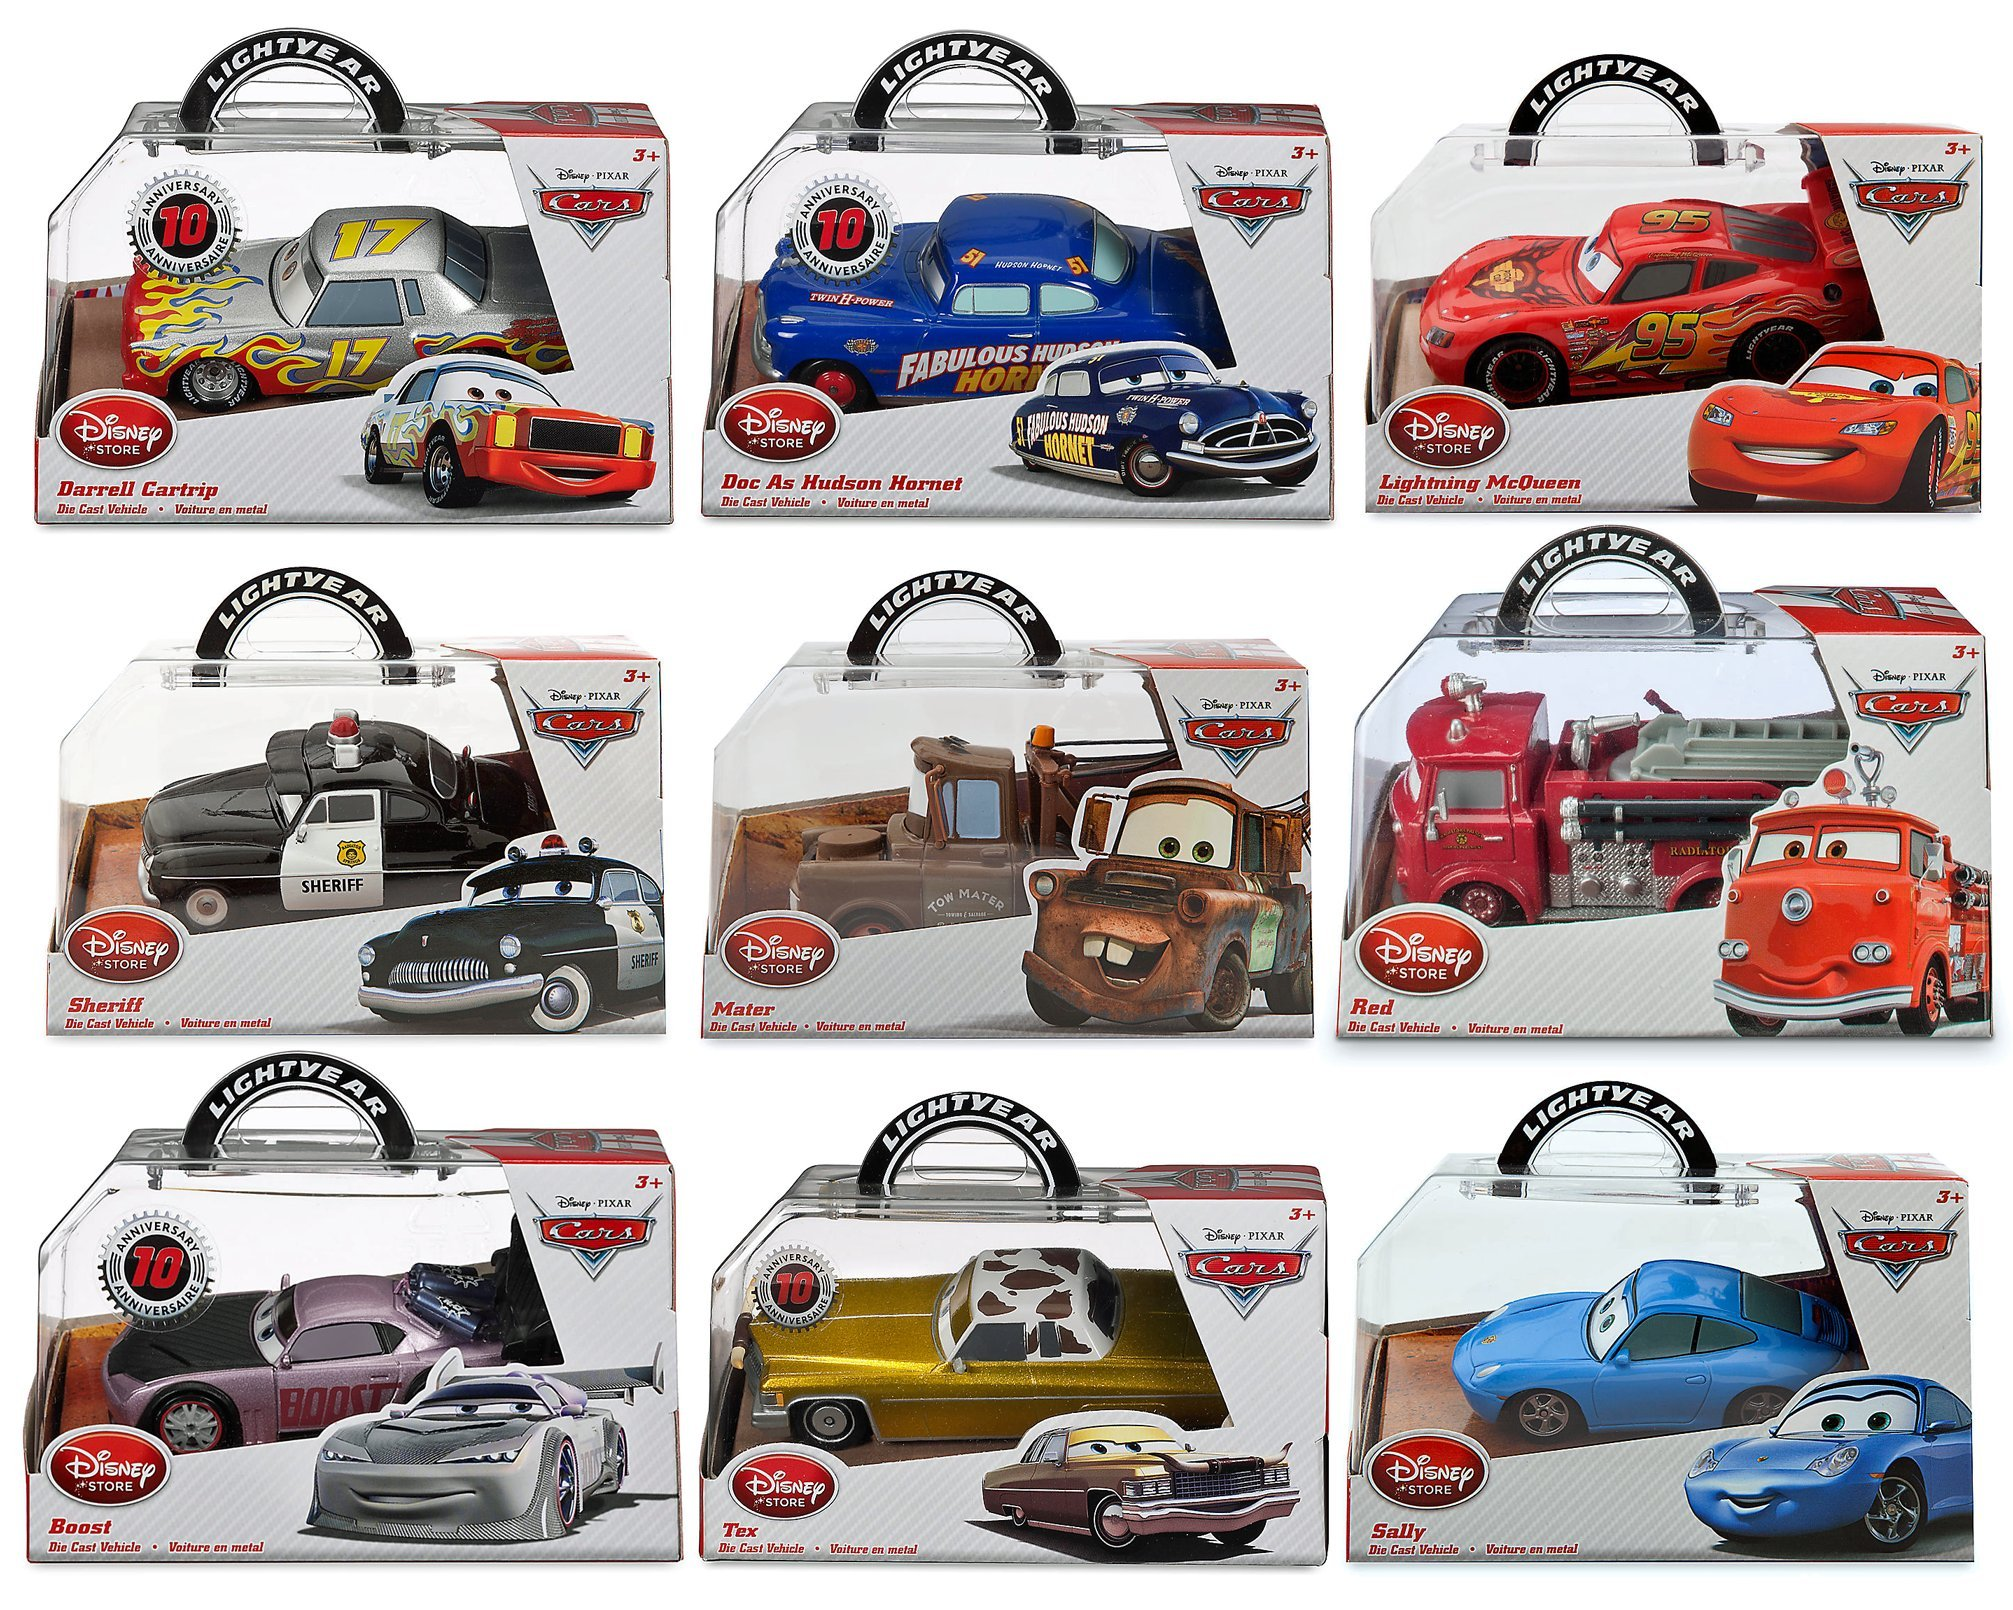 Disney Pixar Diecast Cars Movie Toy Collector Vehicle Set Lighning McQueen-Doc as Hudson Hornet-Tow Mater Truck-Red Fire Truck-Sheriff Polic Car-Boost-Sally-Tex-Darrell Cartrip 1:43 Scale Playset